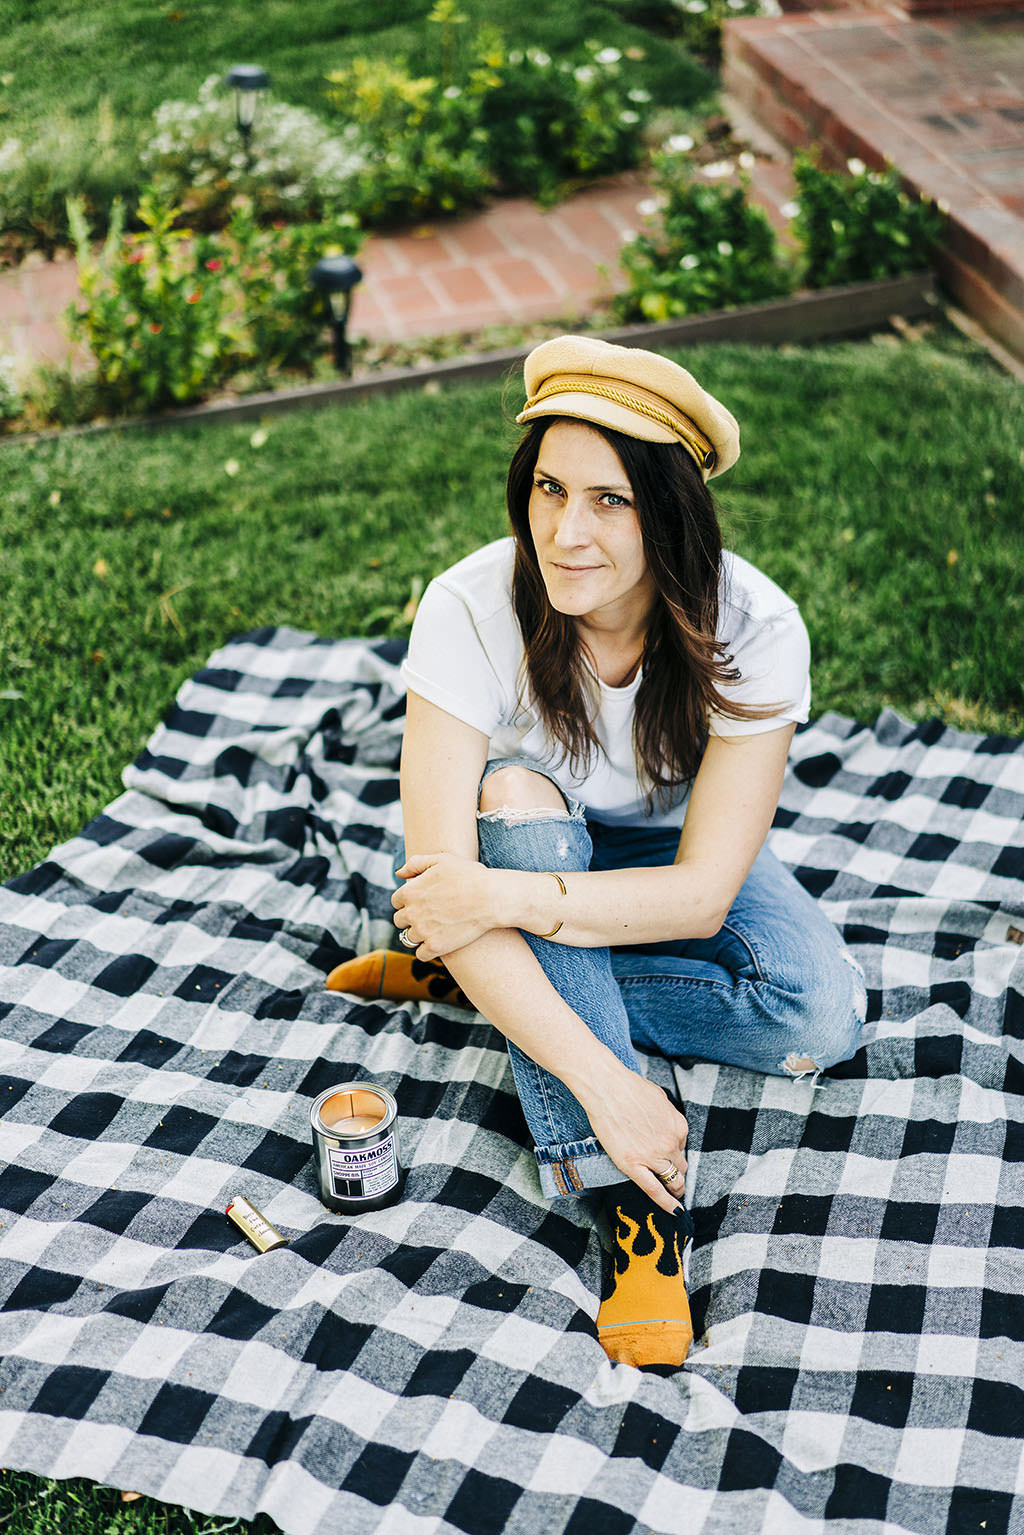 Katy the founder of Shoppe 815 sitting on a picnic wearing flame socks with a tin candle lit.